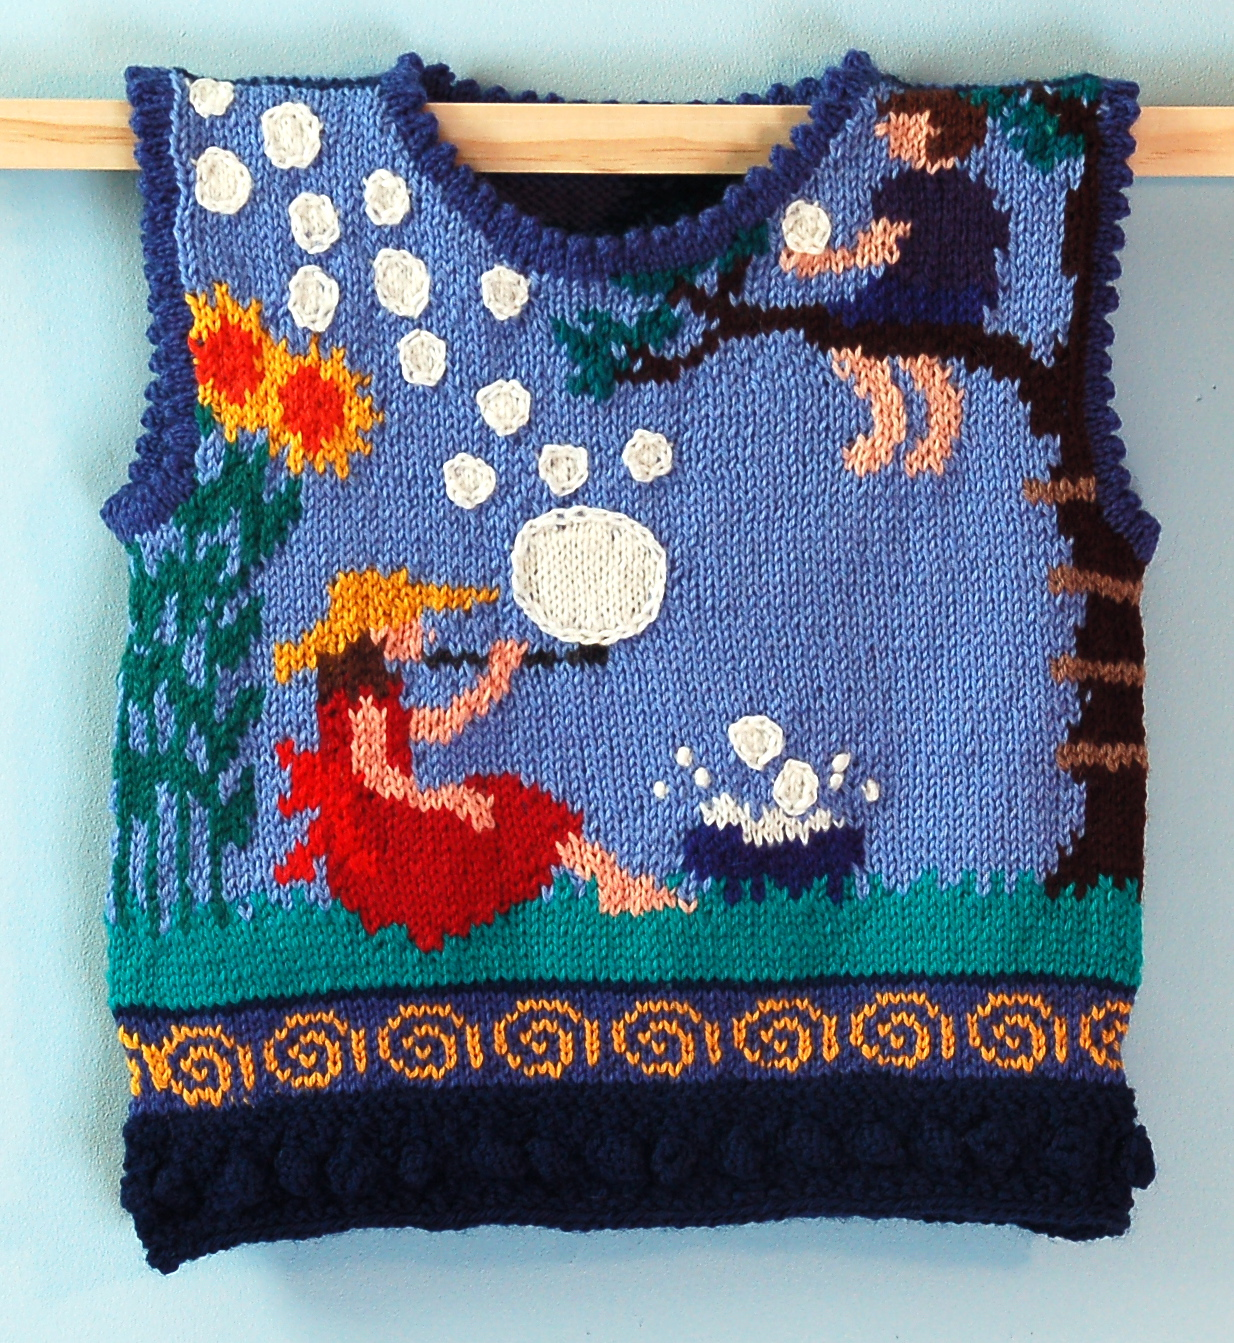 TWO YEARS: BUBBLES FRONT    Here is a scene of summer. The bubbles are huge! The bubbles float from the front to the back. The hem trim is golden swirls on periwinkle. The neck and armhole openings trim is periwinkle picot trim. The hem is bobbles in dark blue.